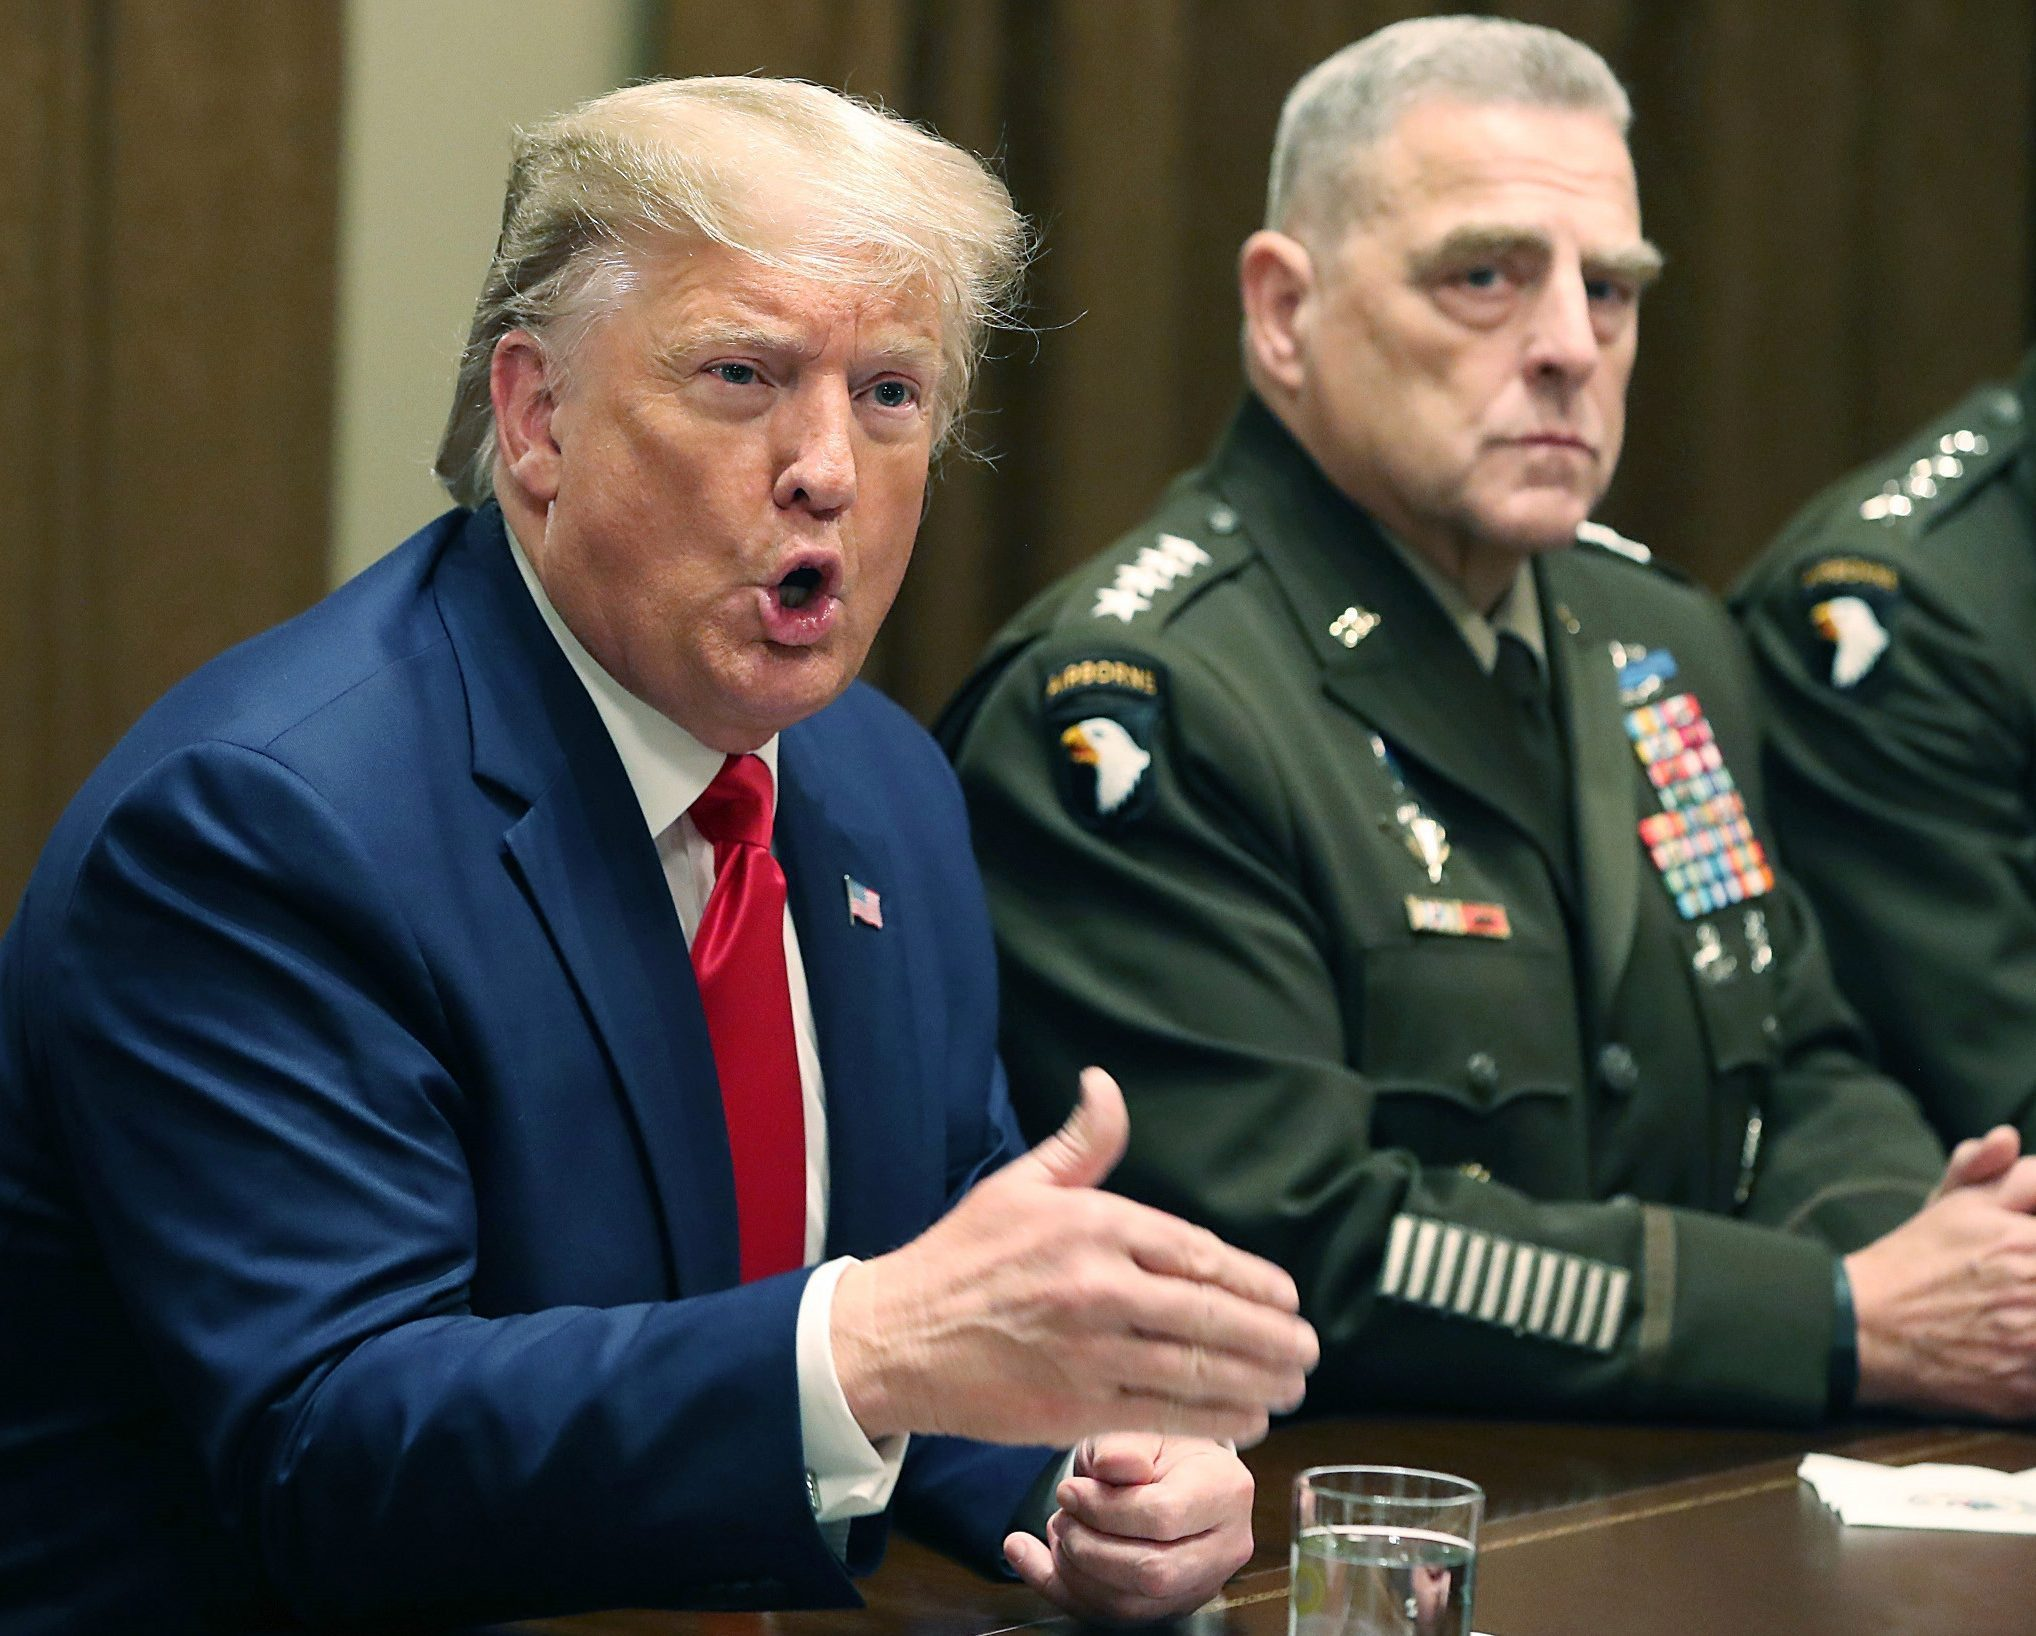 President Donald Trump at a briefing from senior military leaders in the Cabinet Room